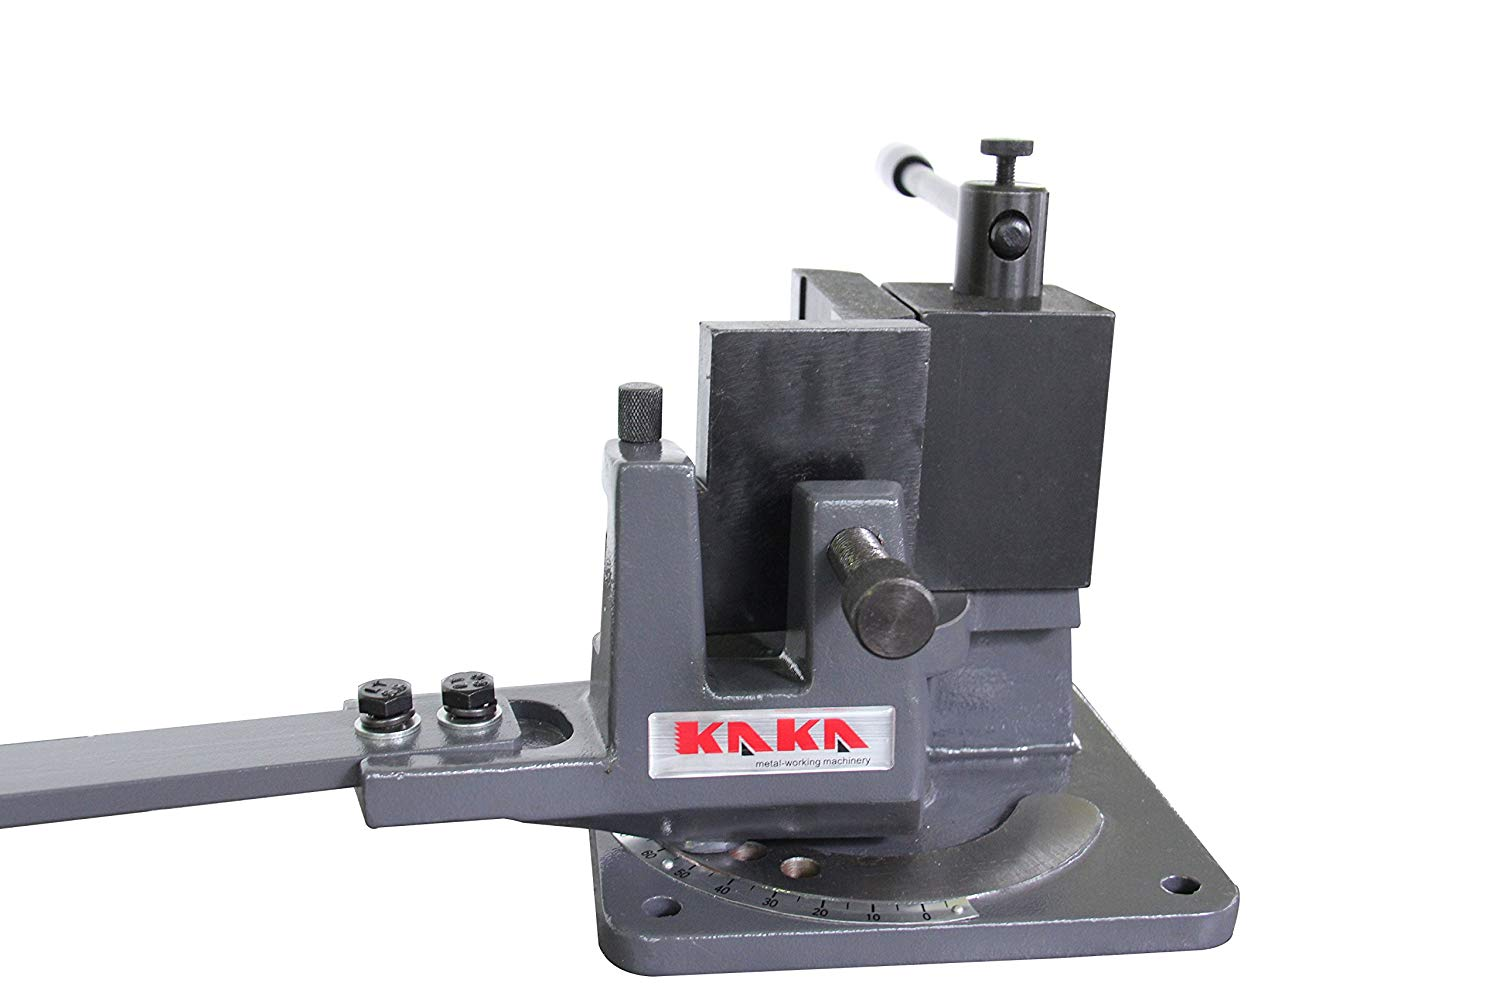 KAKA Industrial UB-70 Cast-Iron Metal Bender, 2-3/4-Inch Hot and Cot Sheet Metal Bender, Solid Design, High Precision Strip Steel, Flat Steel, Round Steel and Angle Steel Metal Bender